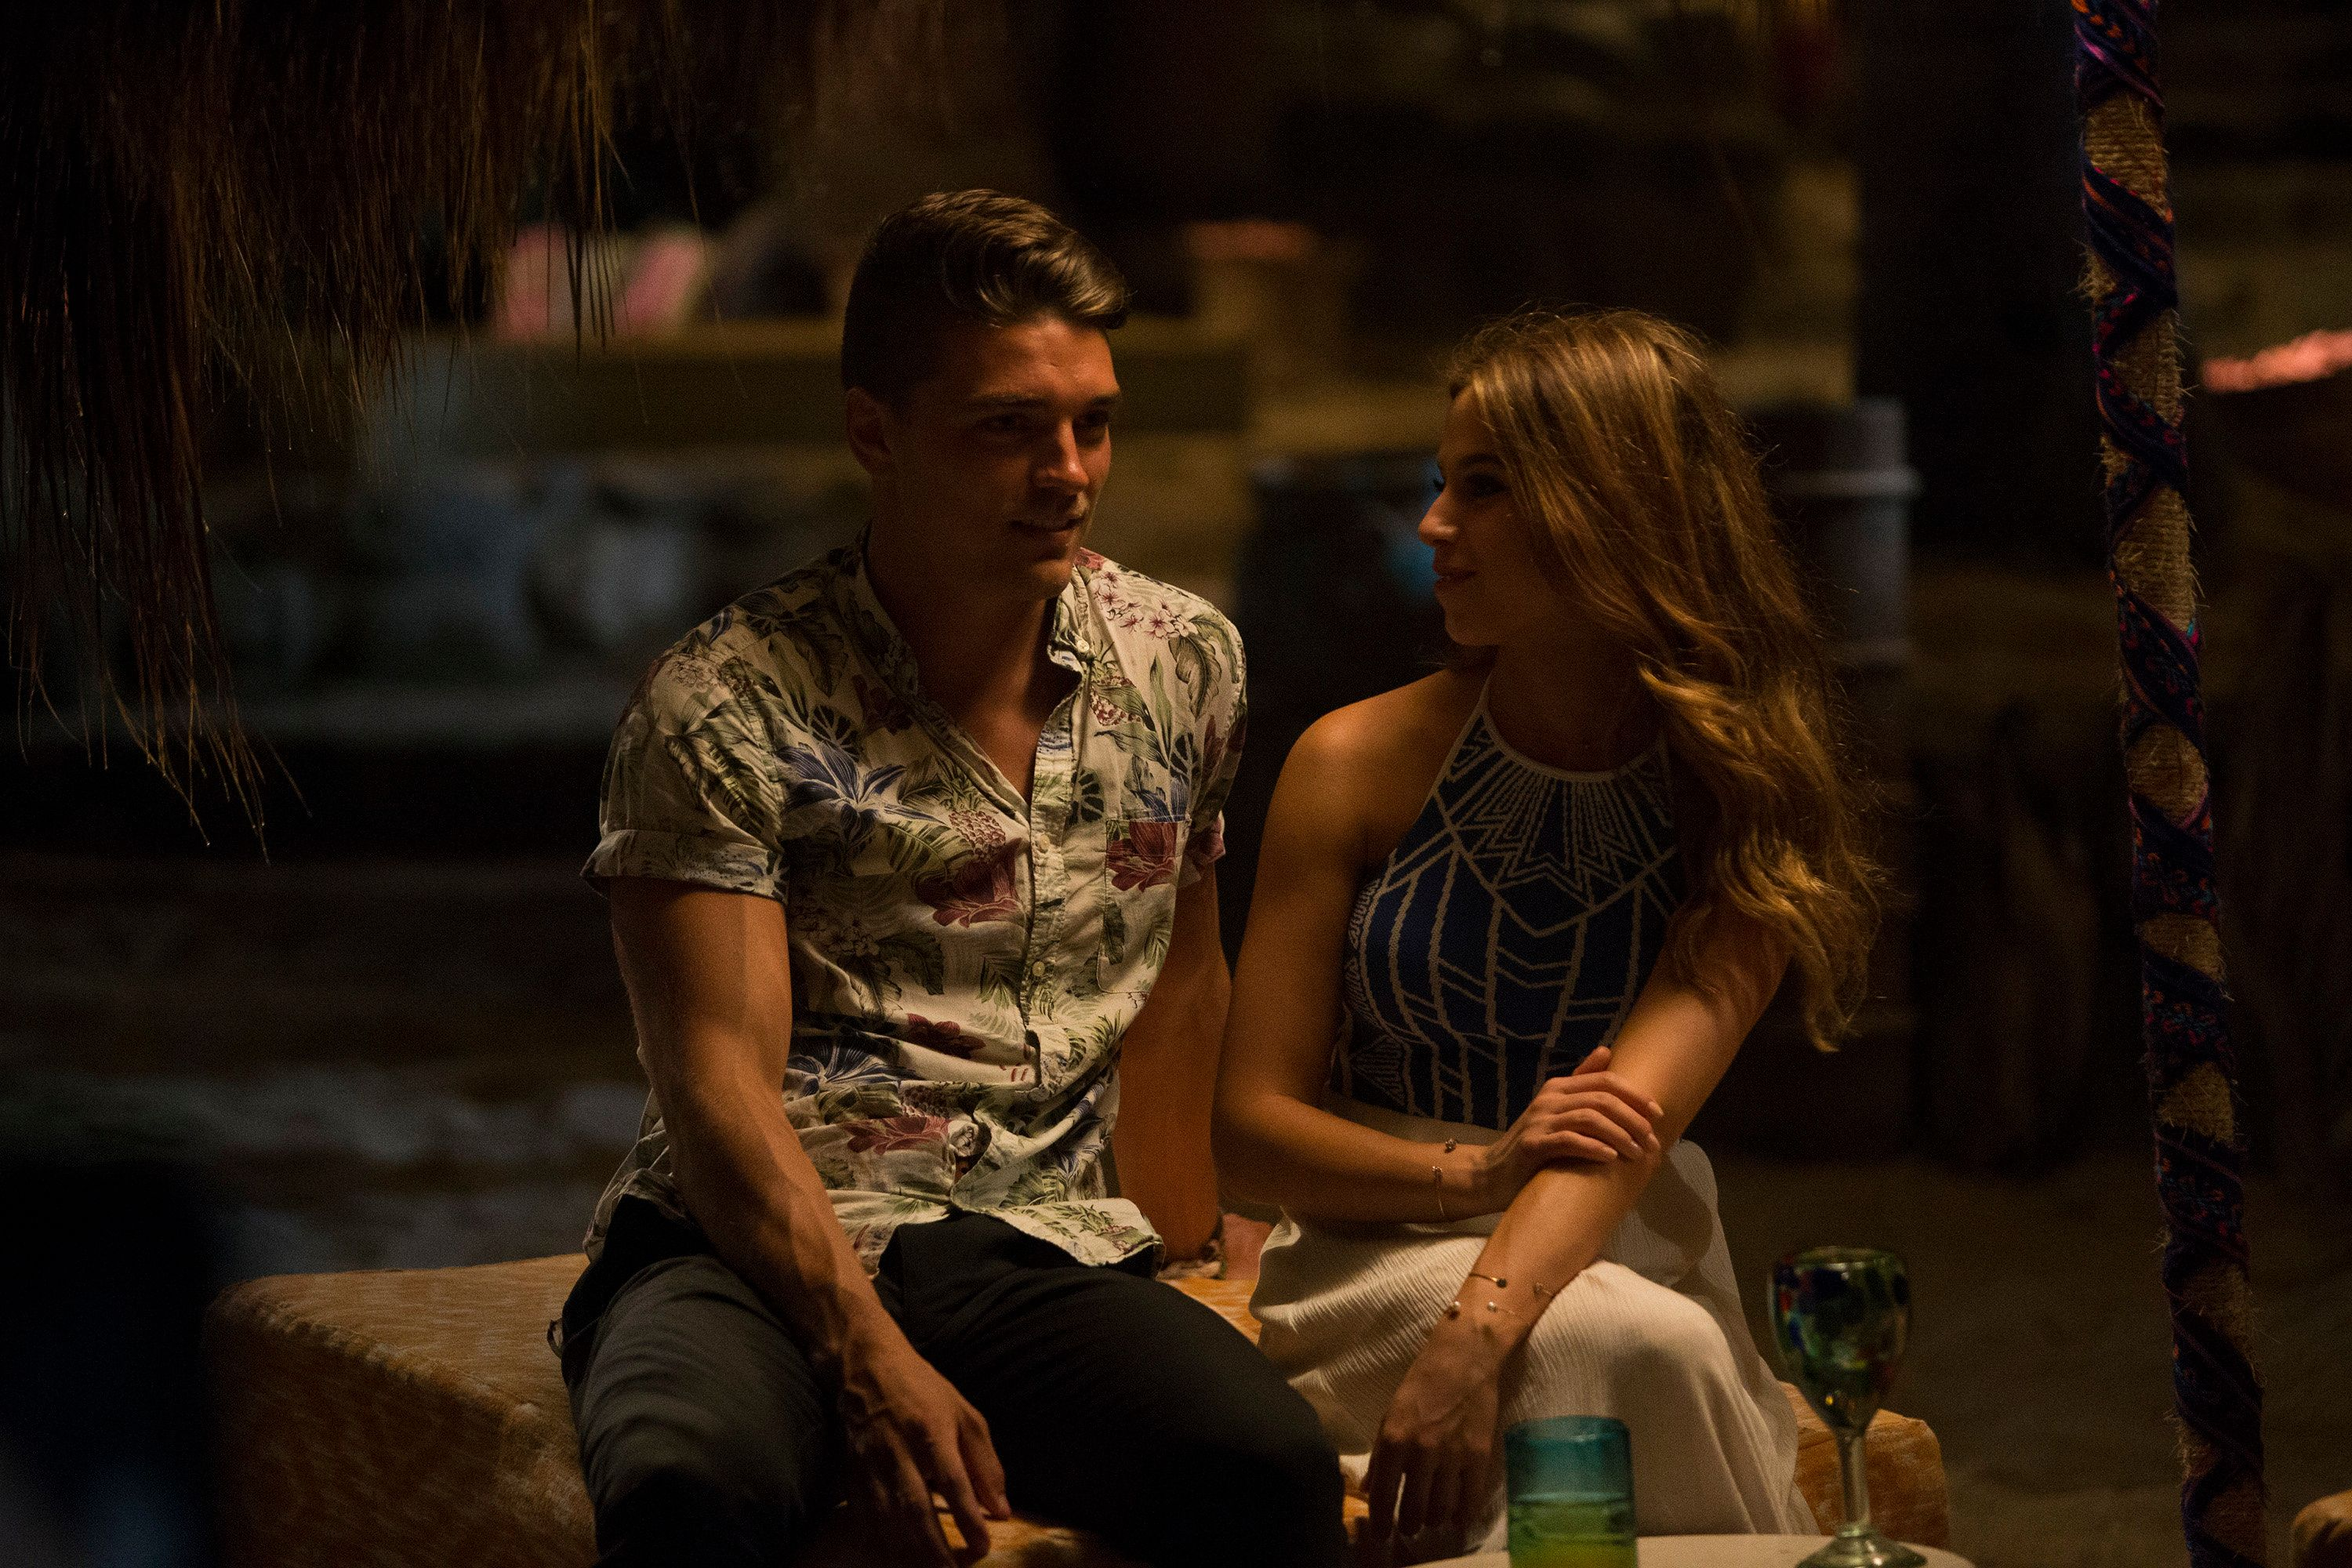 BACHELOR IN PARADISE - 'Episode 401a' - Looking for a second chance at love on the fourth season premiere of the highly anticipated 'Bachelor in Paradise,' beginning MONDAY, AUGUST 14 (8:00-10:01 p.m. EDT) on the ABC Television Network, the cast arrives one by one to their own private paradise in the gorgeous town of Sayulita, located in Vallarta-Nayarit, Mexico. (Paul Hebert via Getty Images) DEAN UNGLERT, KRISTINA SCHULMAN